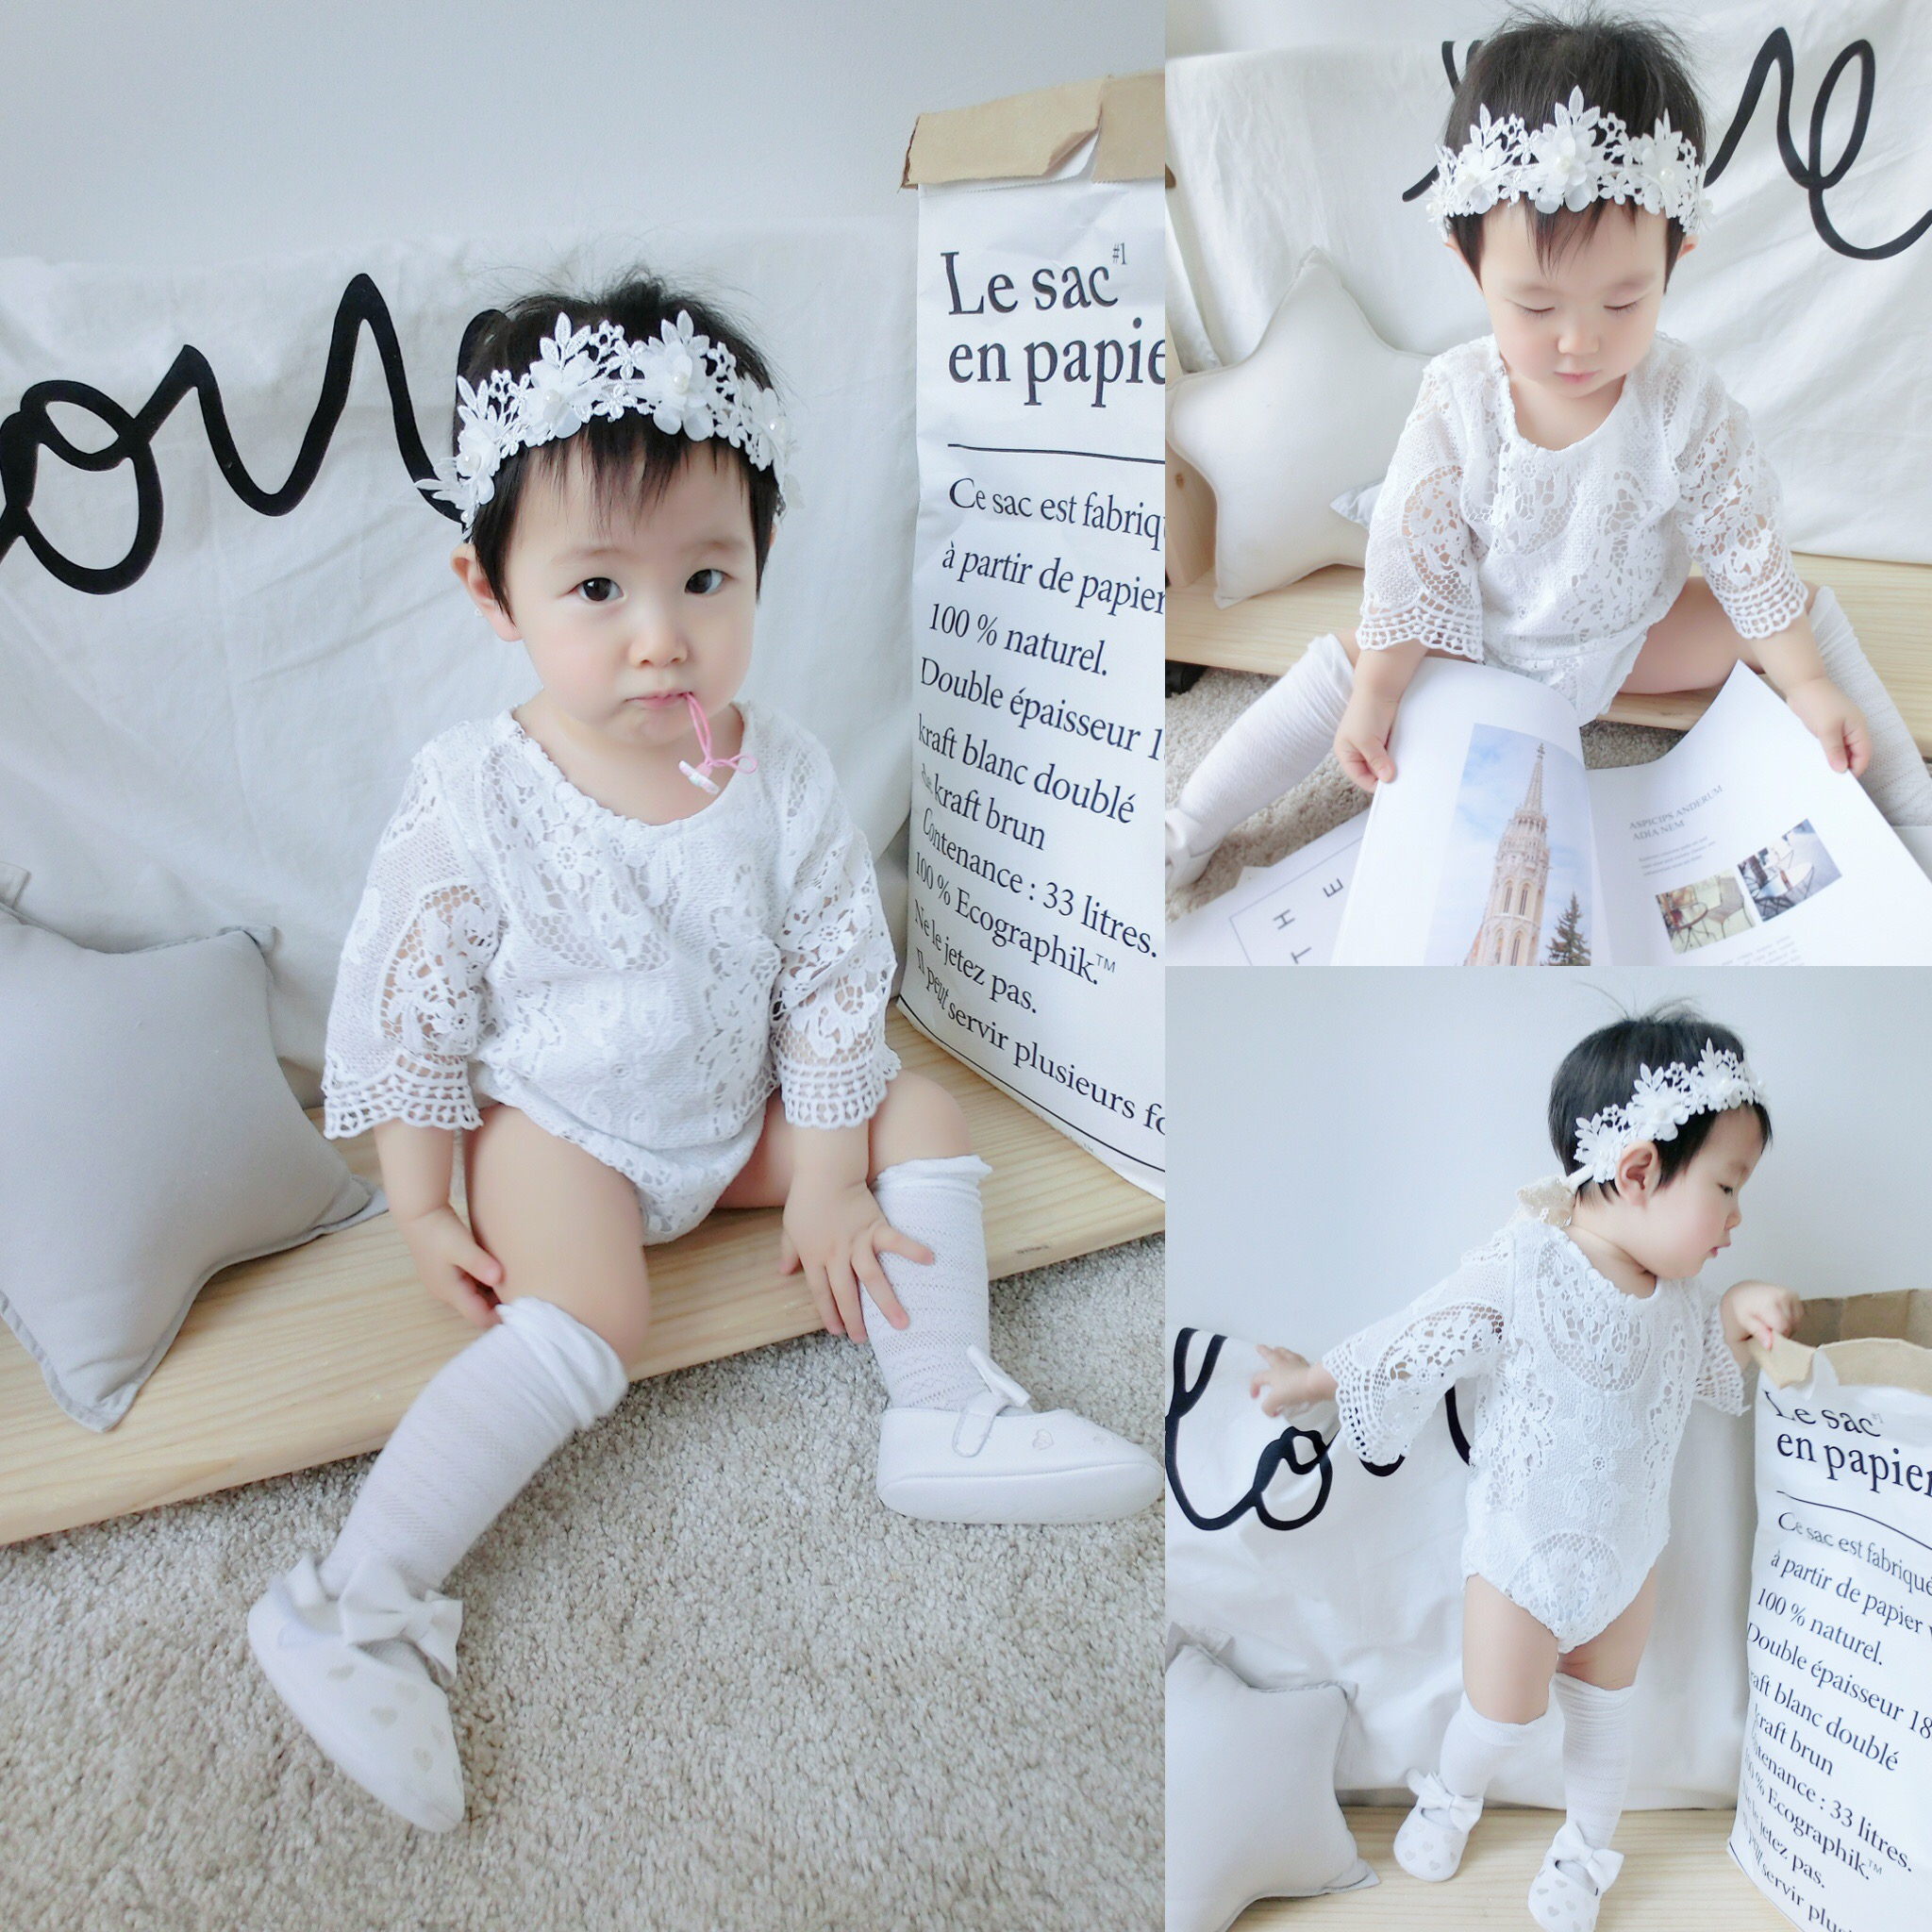 af7999f9d USD 14.03  Cocoa mother baby Siamese female baby short sleeve romper ...